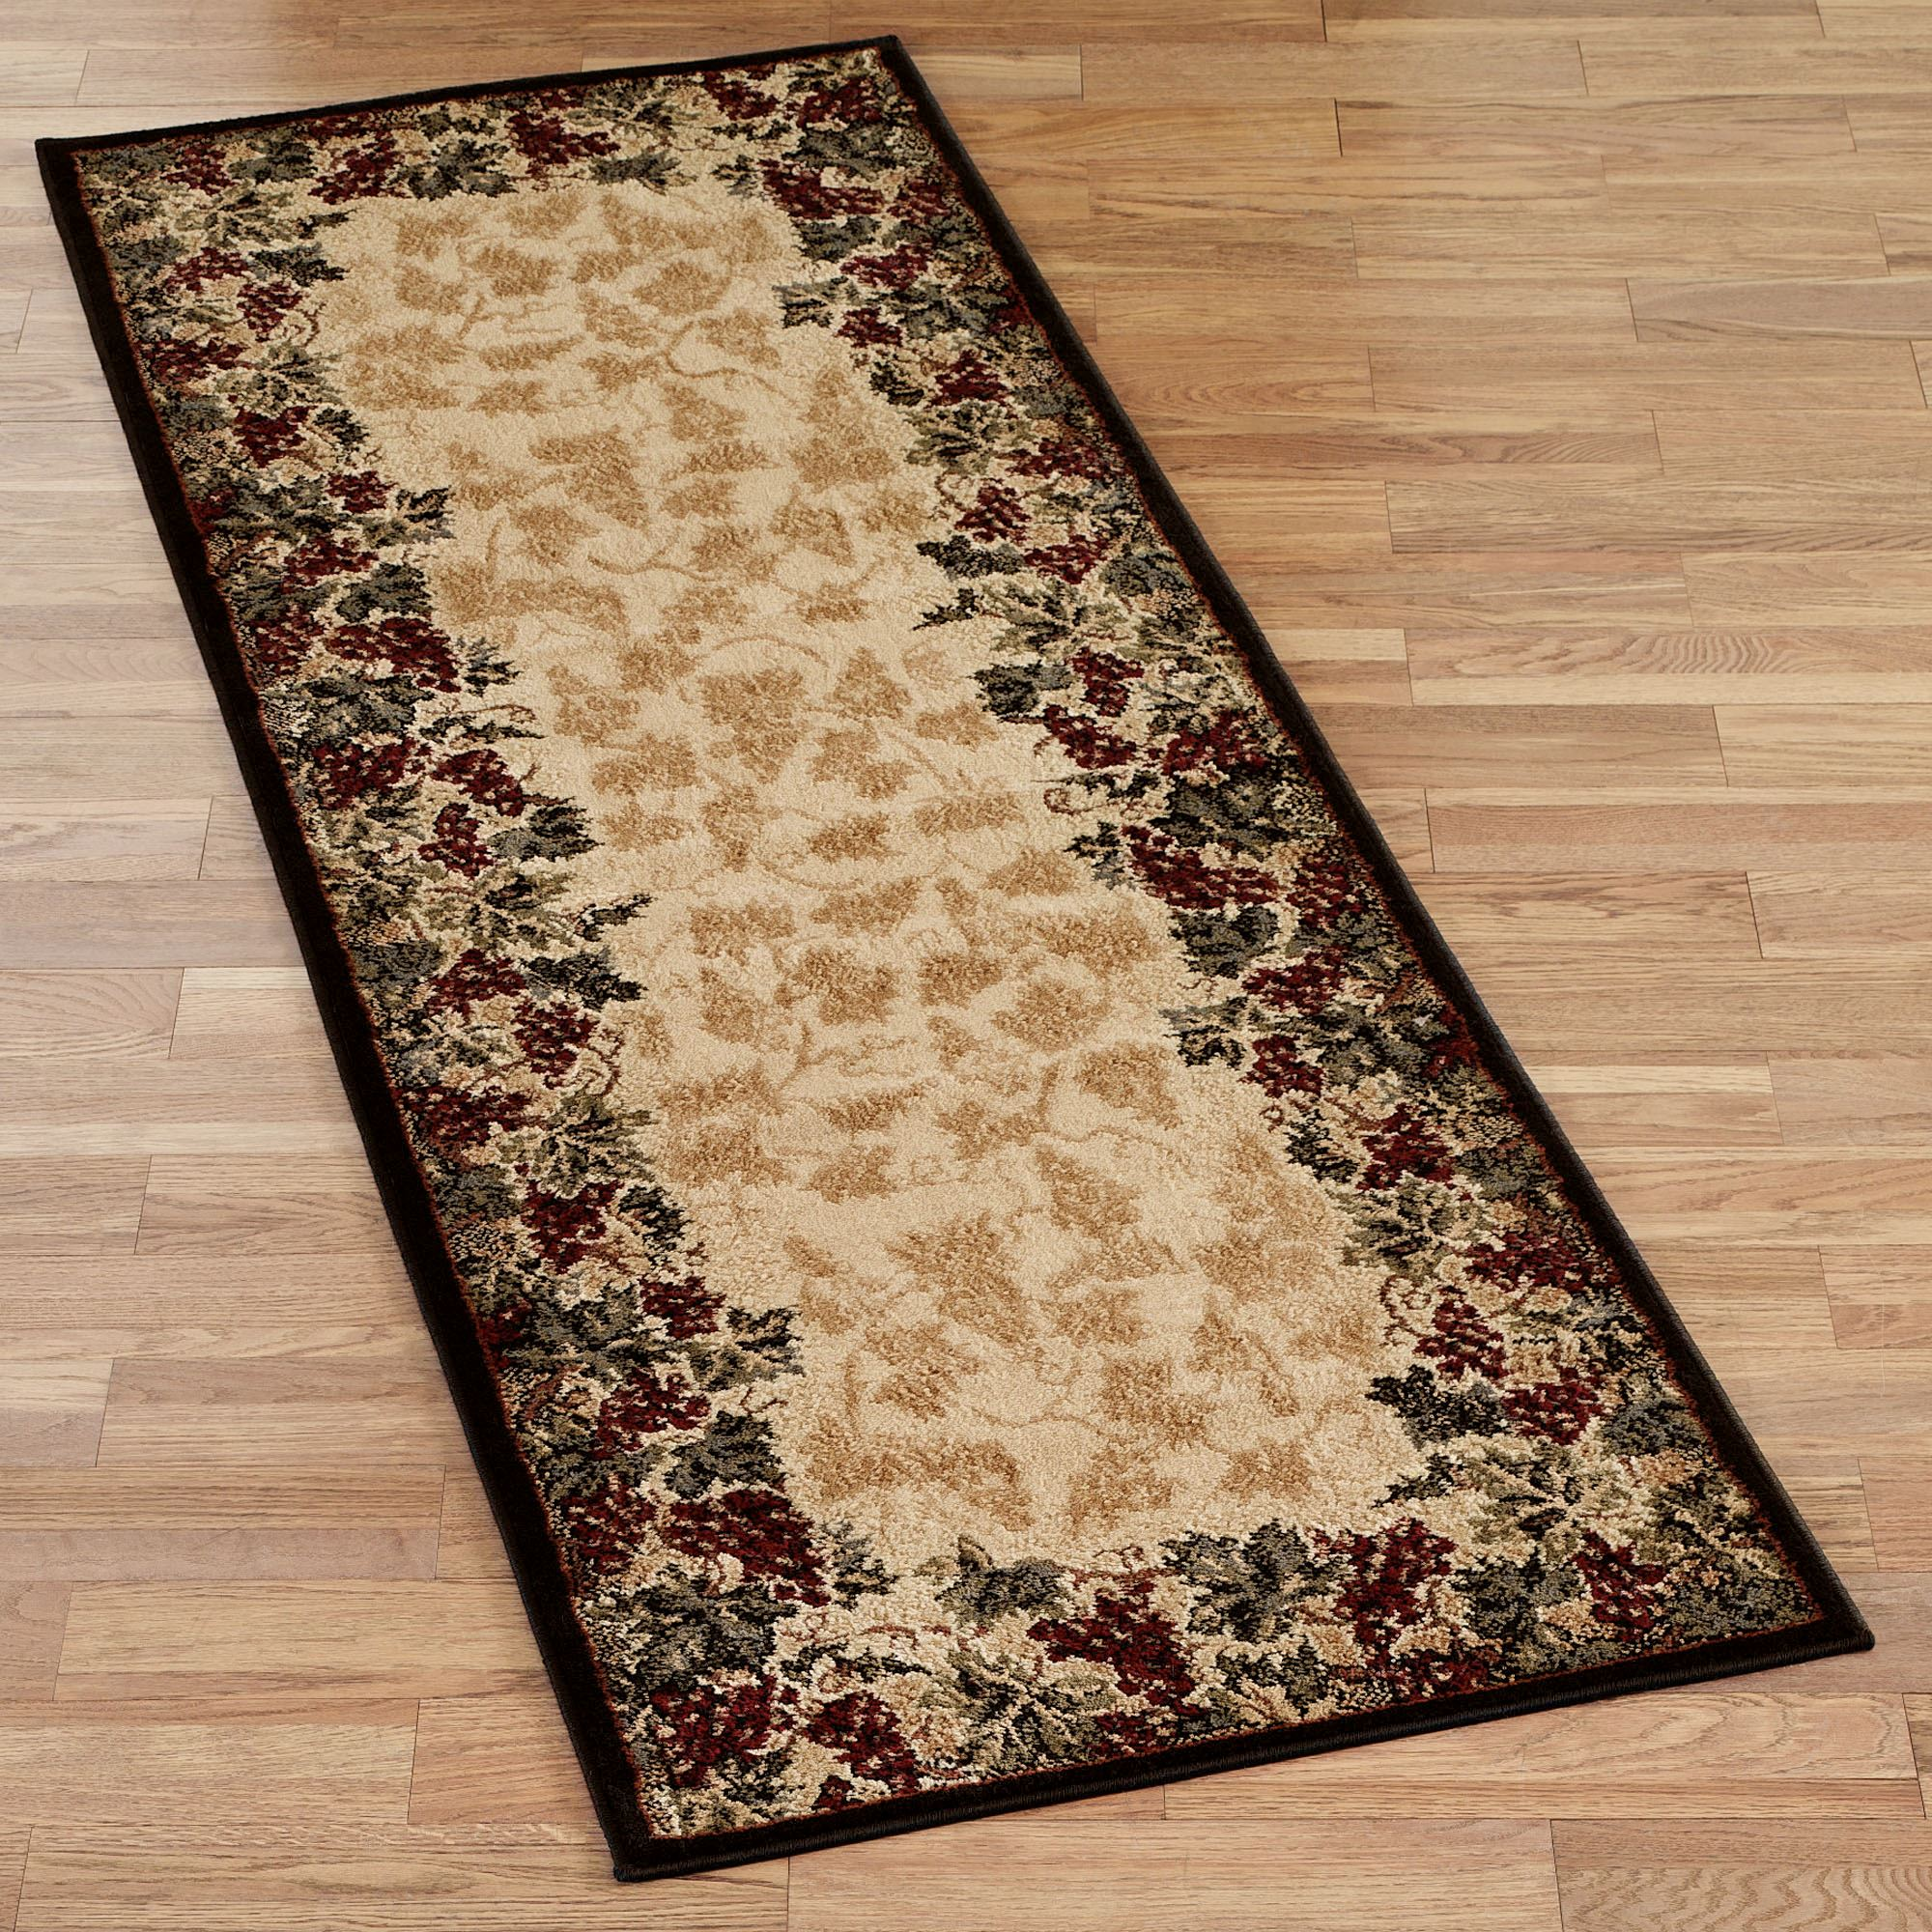 runner rugs beaujolais ii grape rug runner OYZSJSU